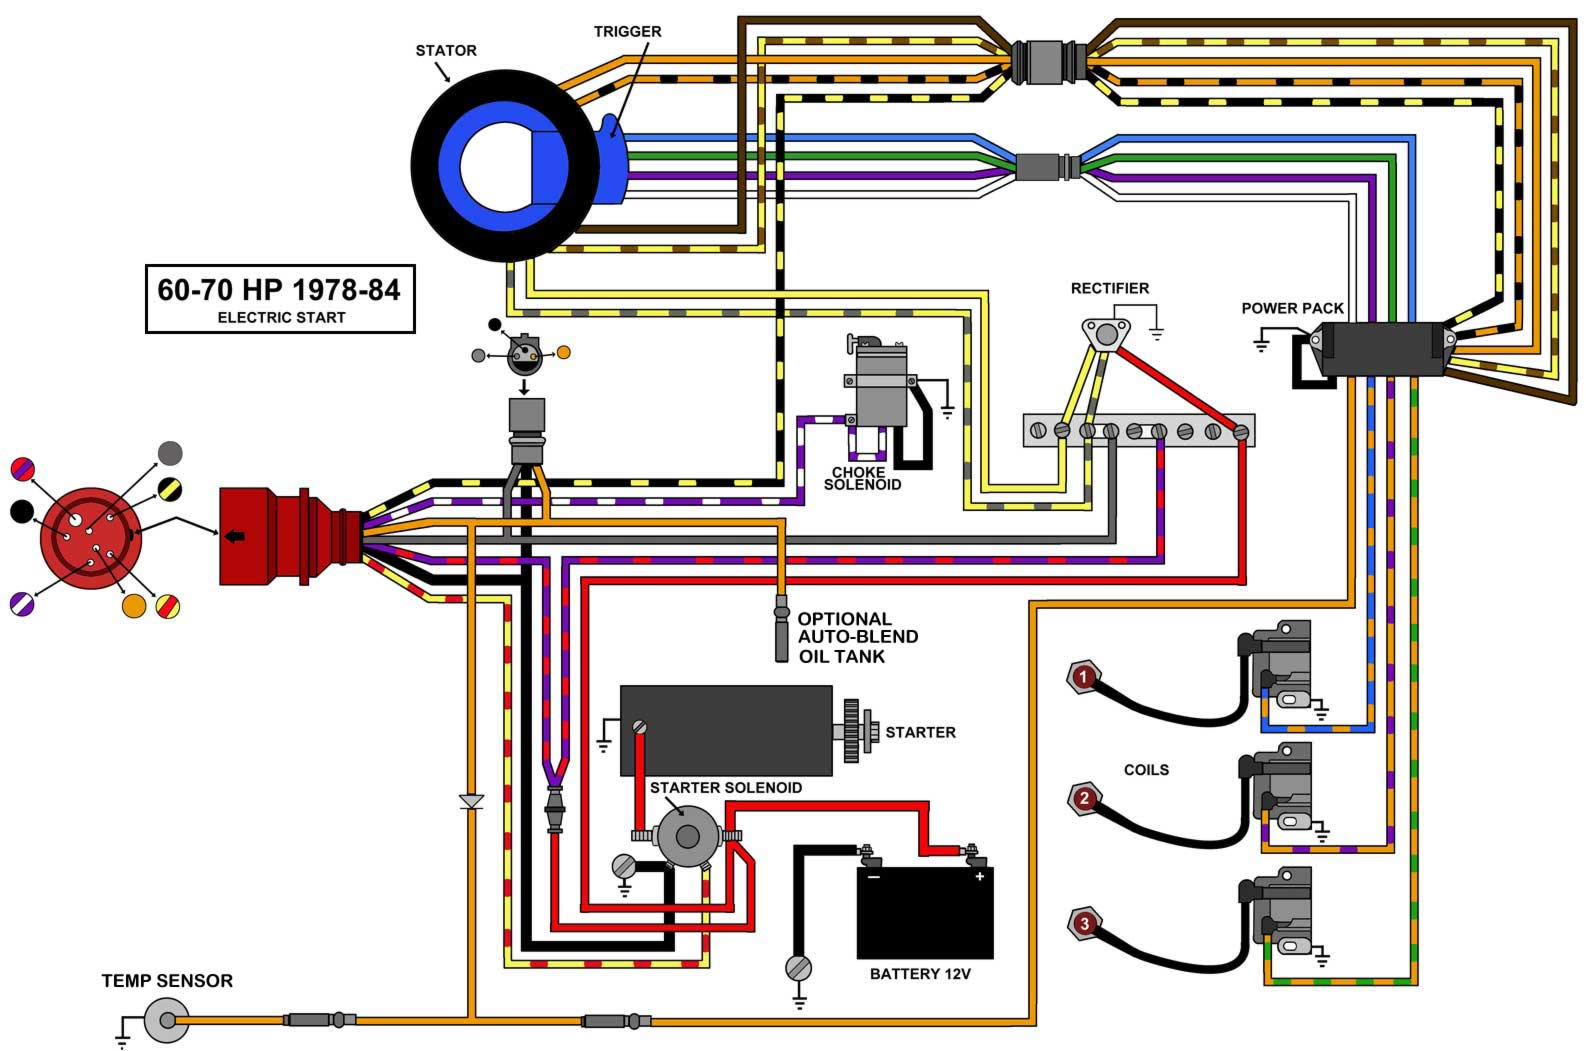 omc wiring diagram wiring diagrams online wiring tach from johnson controls page 1 iboats boating forums